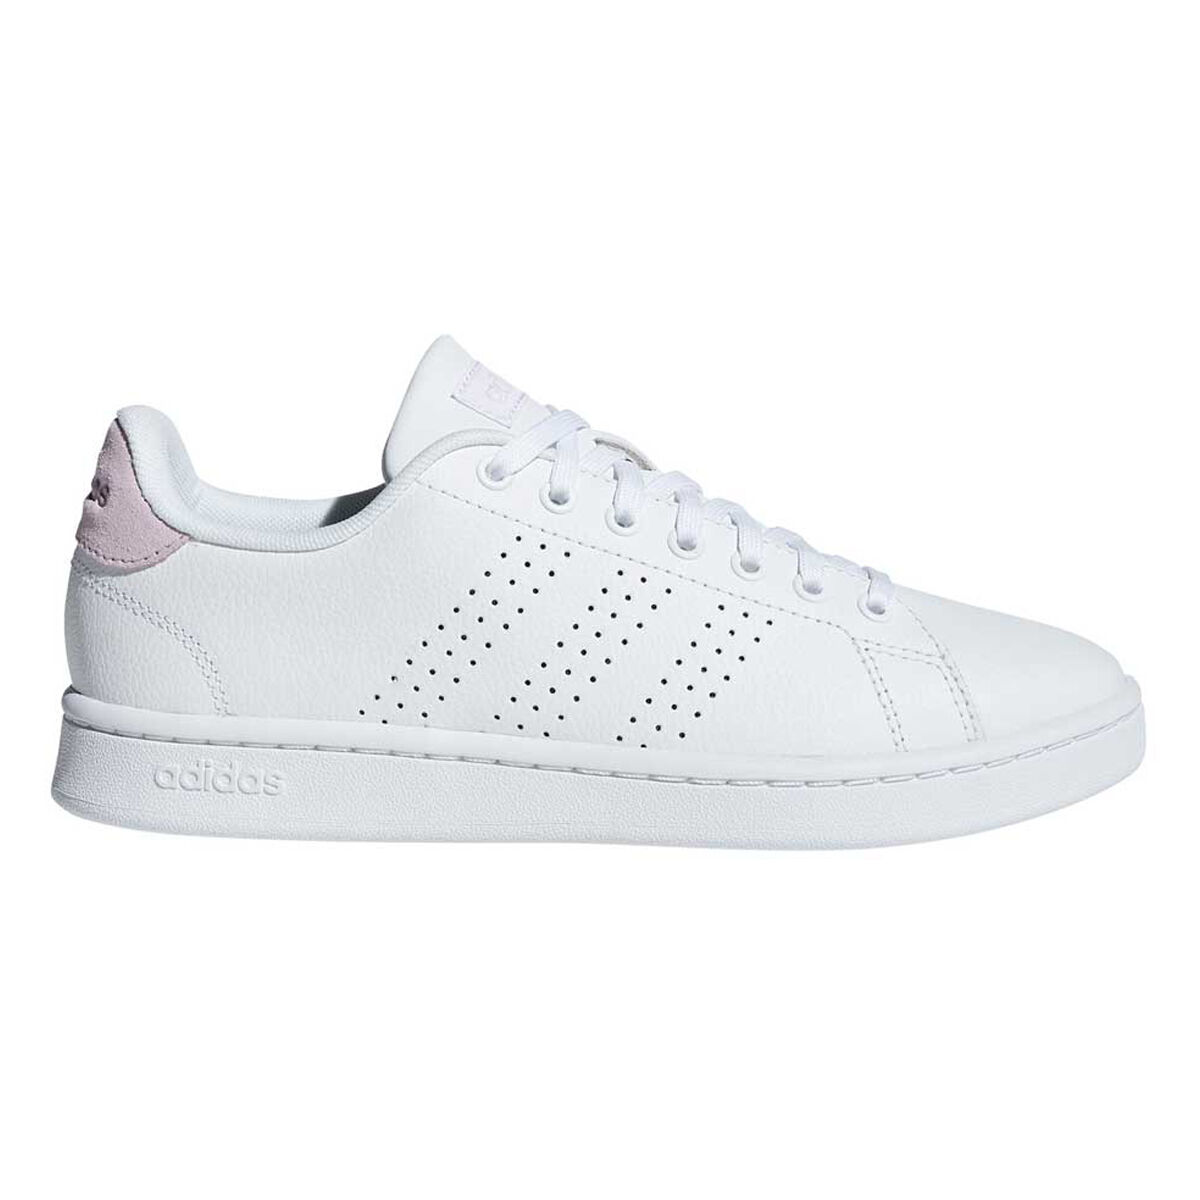 Shop Adidas Women Shoe's Cloudfoam Advantage Clean Sneakers